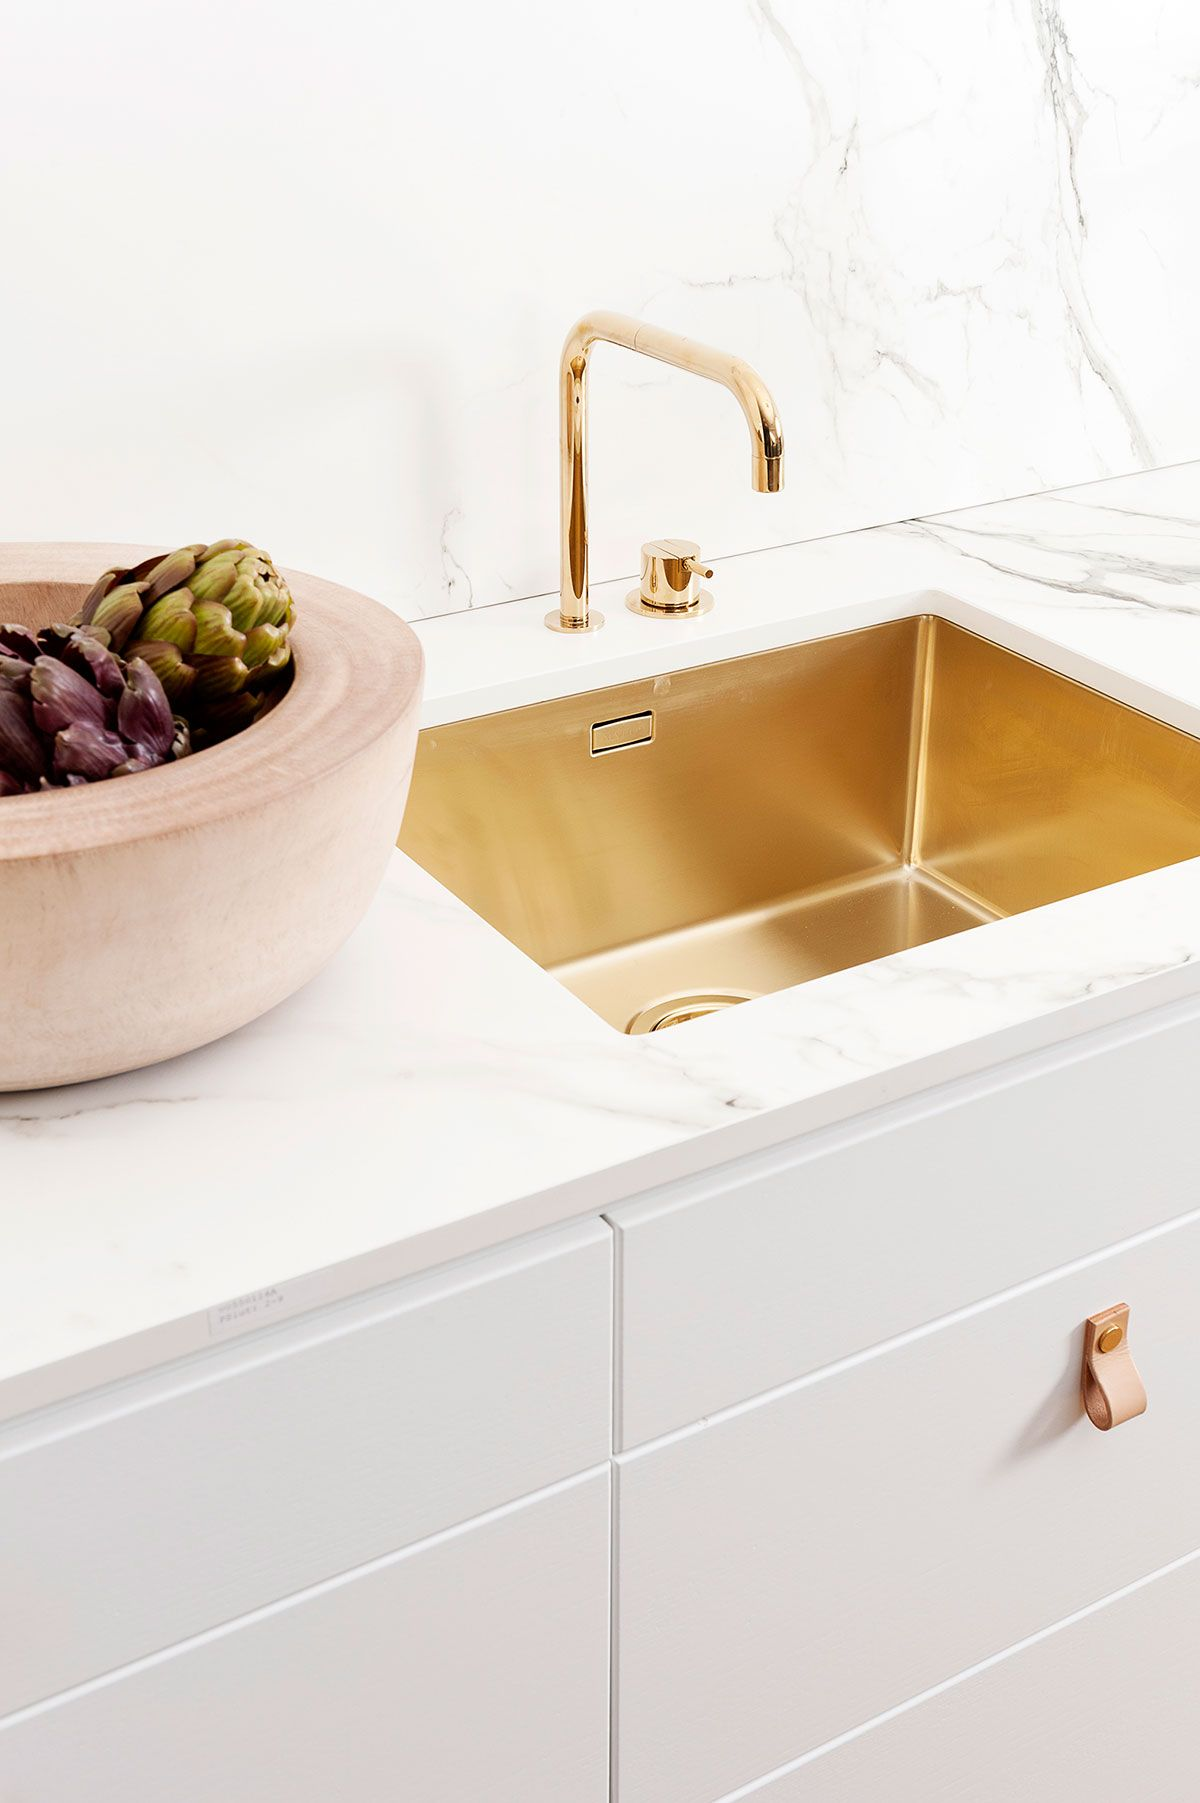 vola contemporary minimalist remote valve kitchen faucet with side knob and 90 degree spout in polished gold - the ultimate guide to luxury plumbing by the delight of design